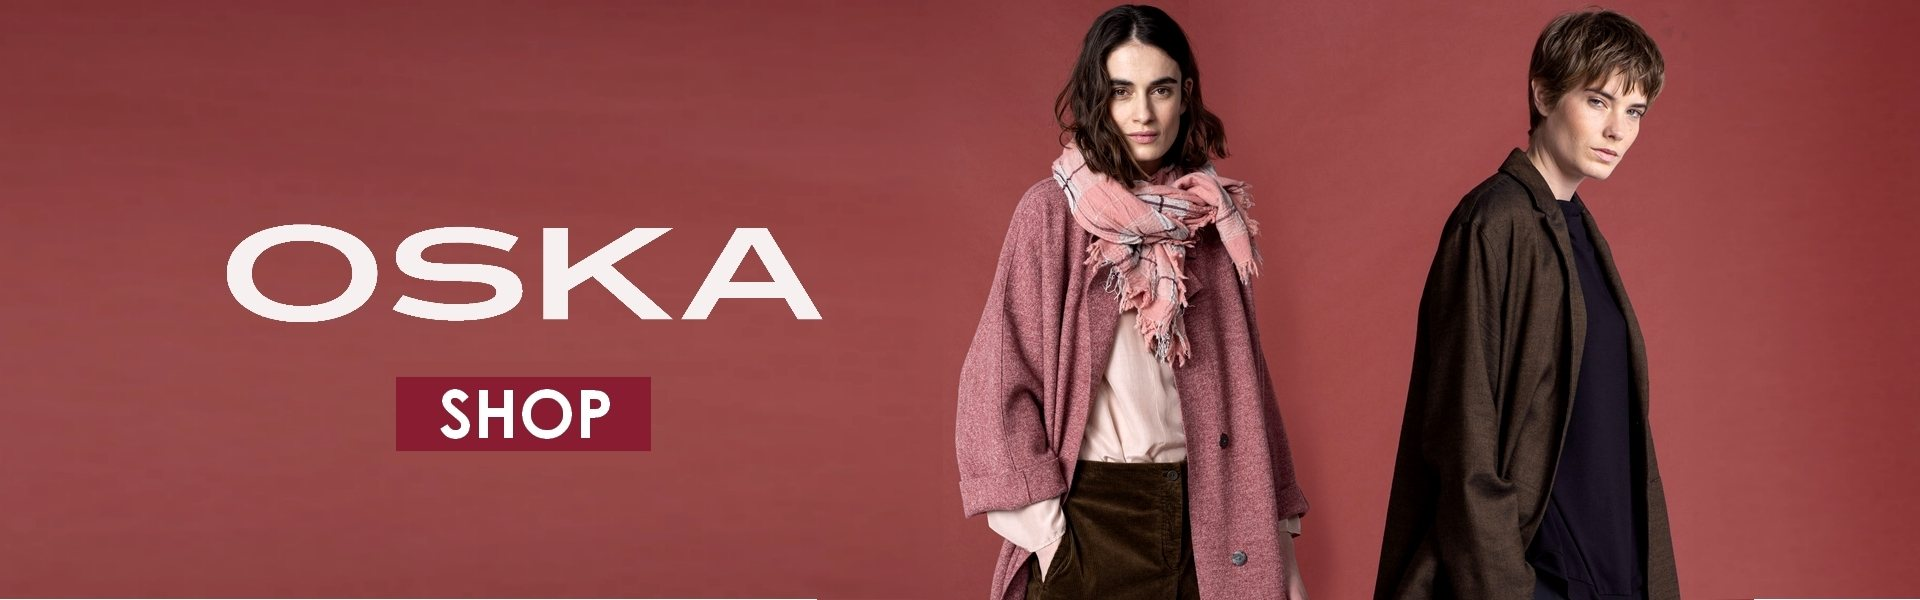 Oska clothing Spring Summer 2020 new collection